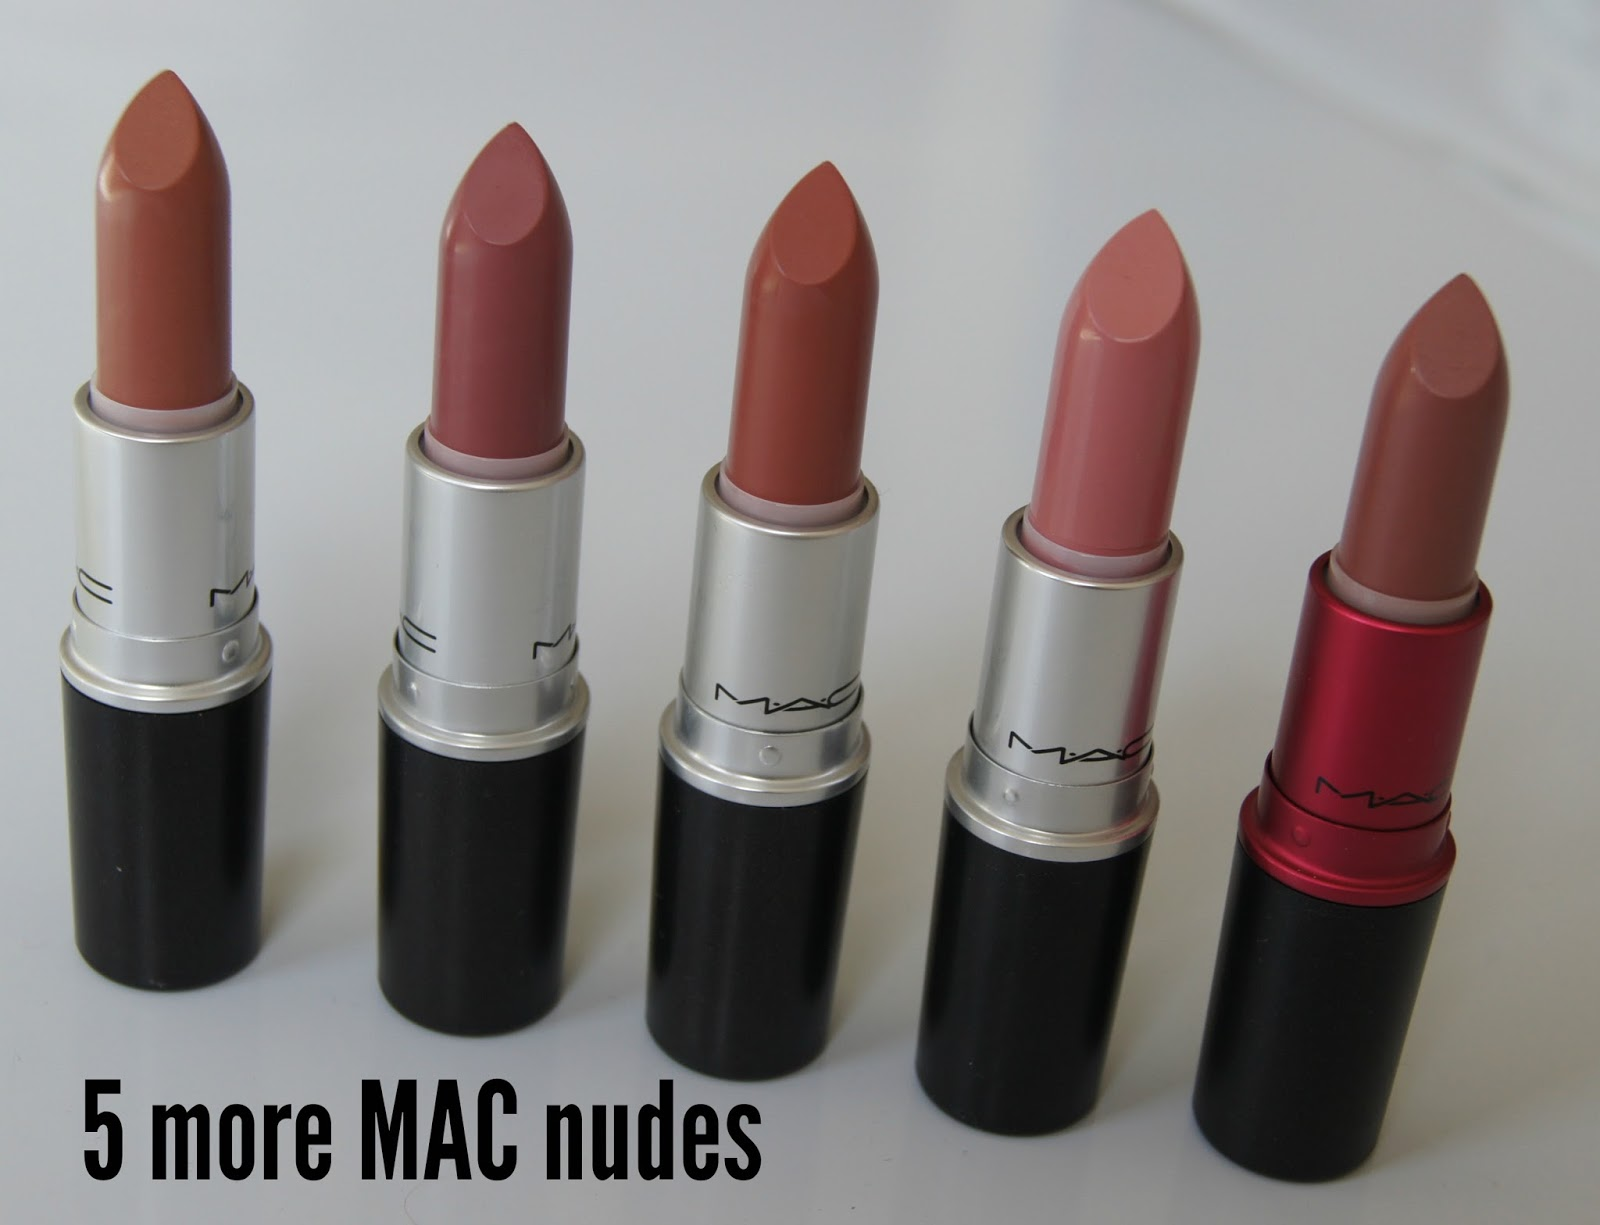 MAC nude lipstick review